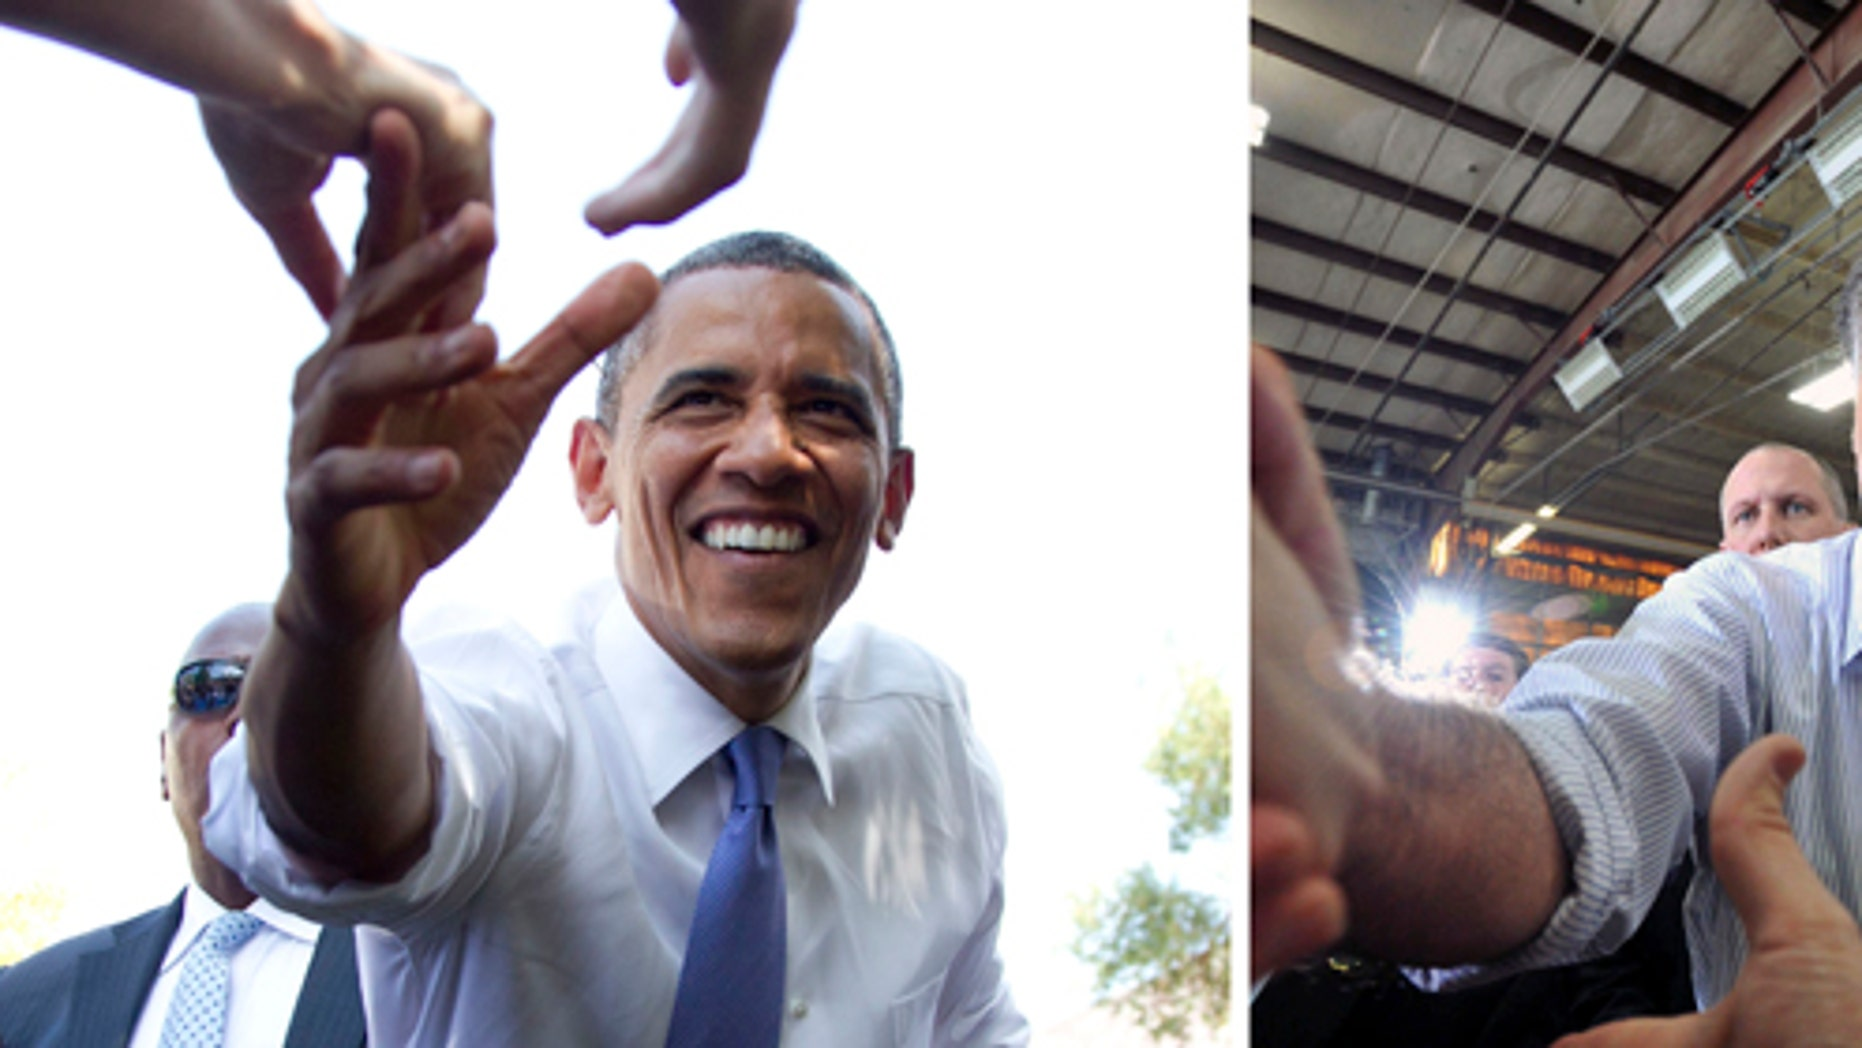 In this photo combination, President Barack Obama, left, reaches out to shake hands after speaking at a campaign event at Capital University on Tuesday, Aug. 21, 2012, in Columbus, Ohio and Republican presidential candidate, Mitt Romney, shakes hands with supporters after finishing his speech during a rally at Guerdon Enterprises in Boise, Idaho  Friday, Feb. 17, 2012. (AP Photo)